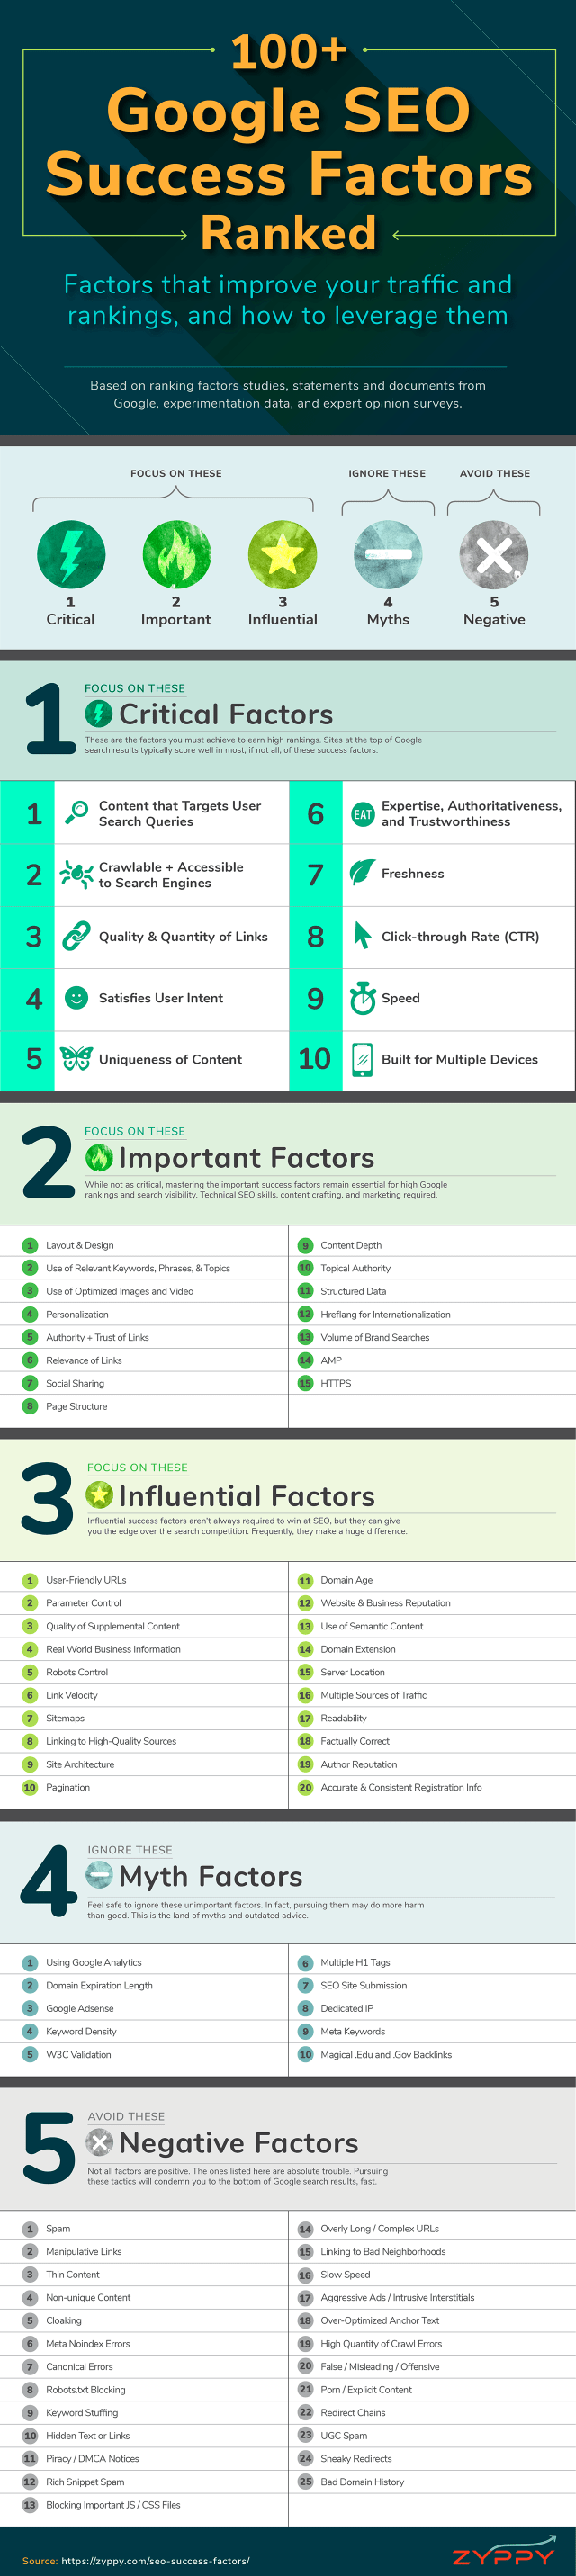 PixoLabo - 100+ Google SEO Success Factors Ranked Infographic